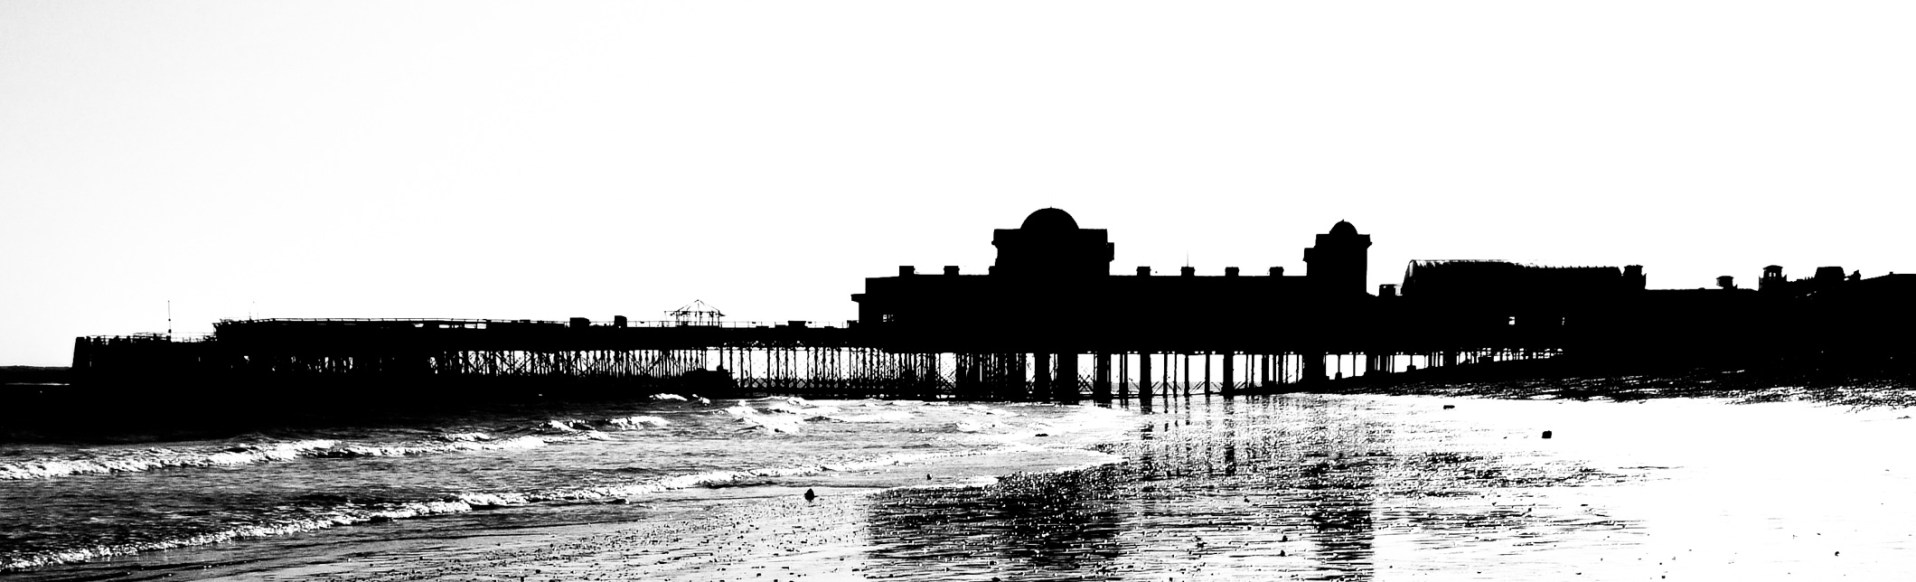 South Parade Pier - Silhouette. Copyright © 2007 Gary Allman, all rights reserved.